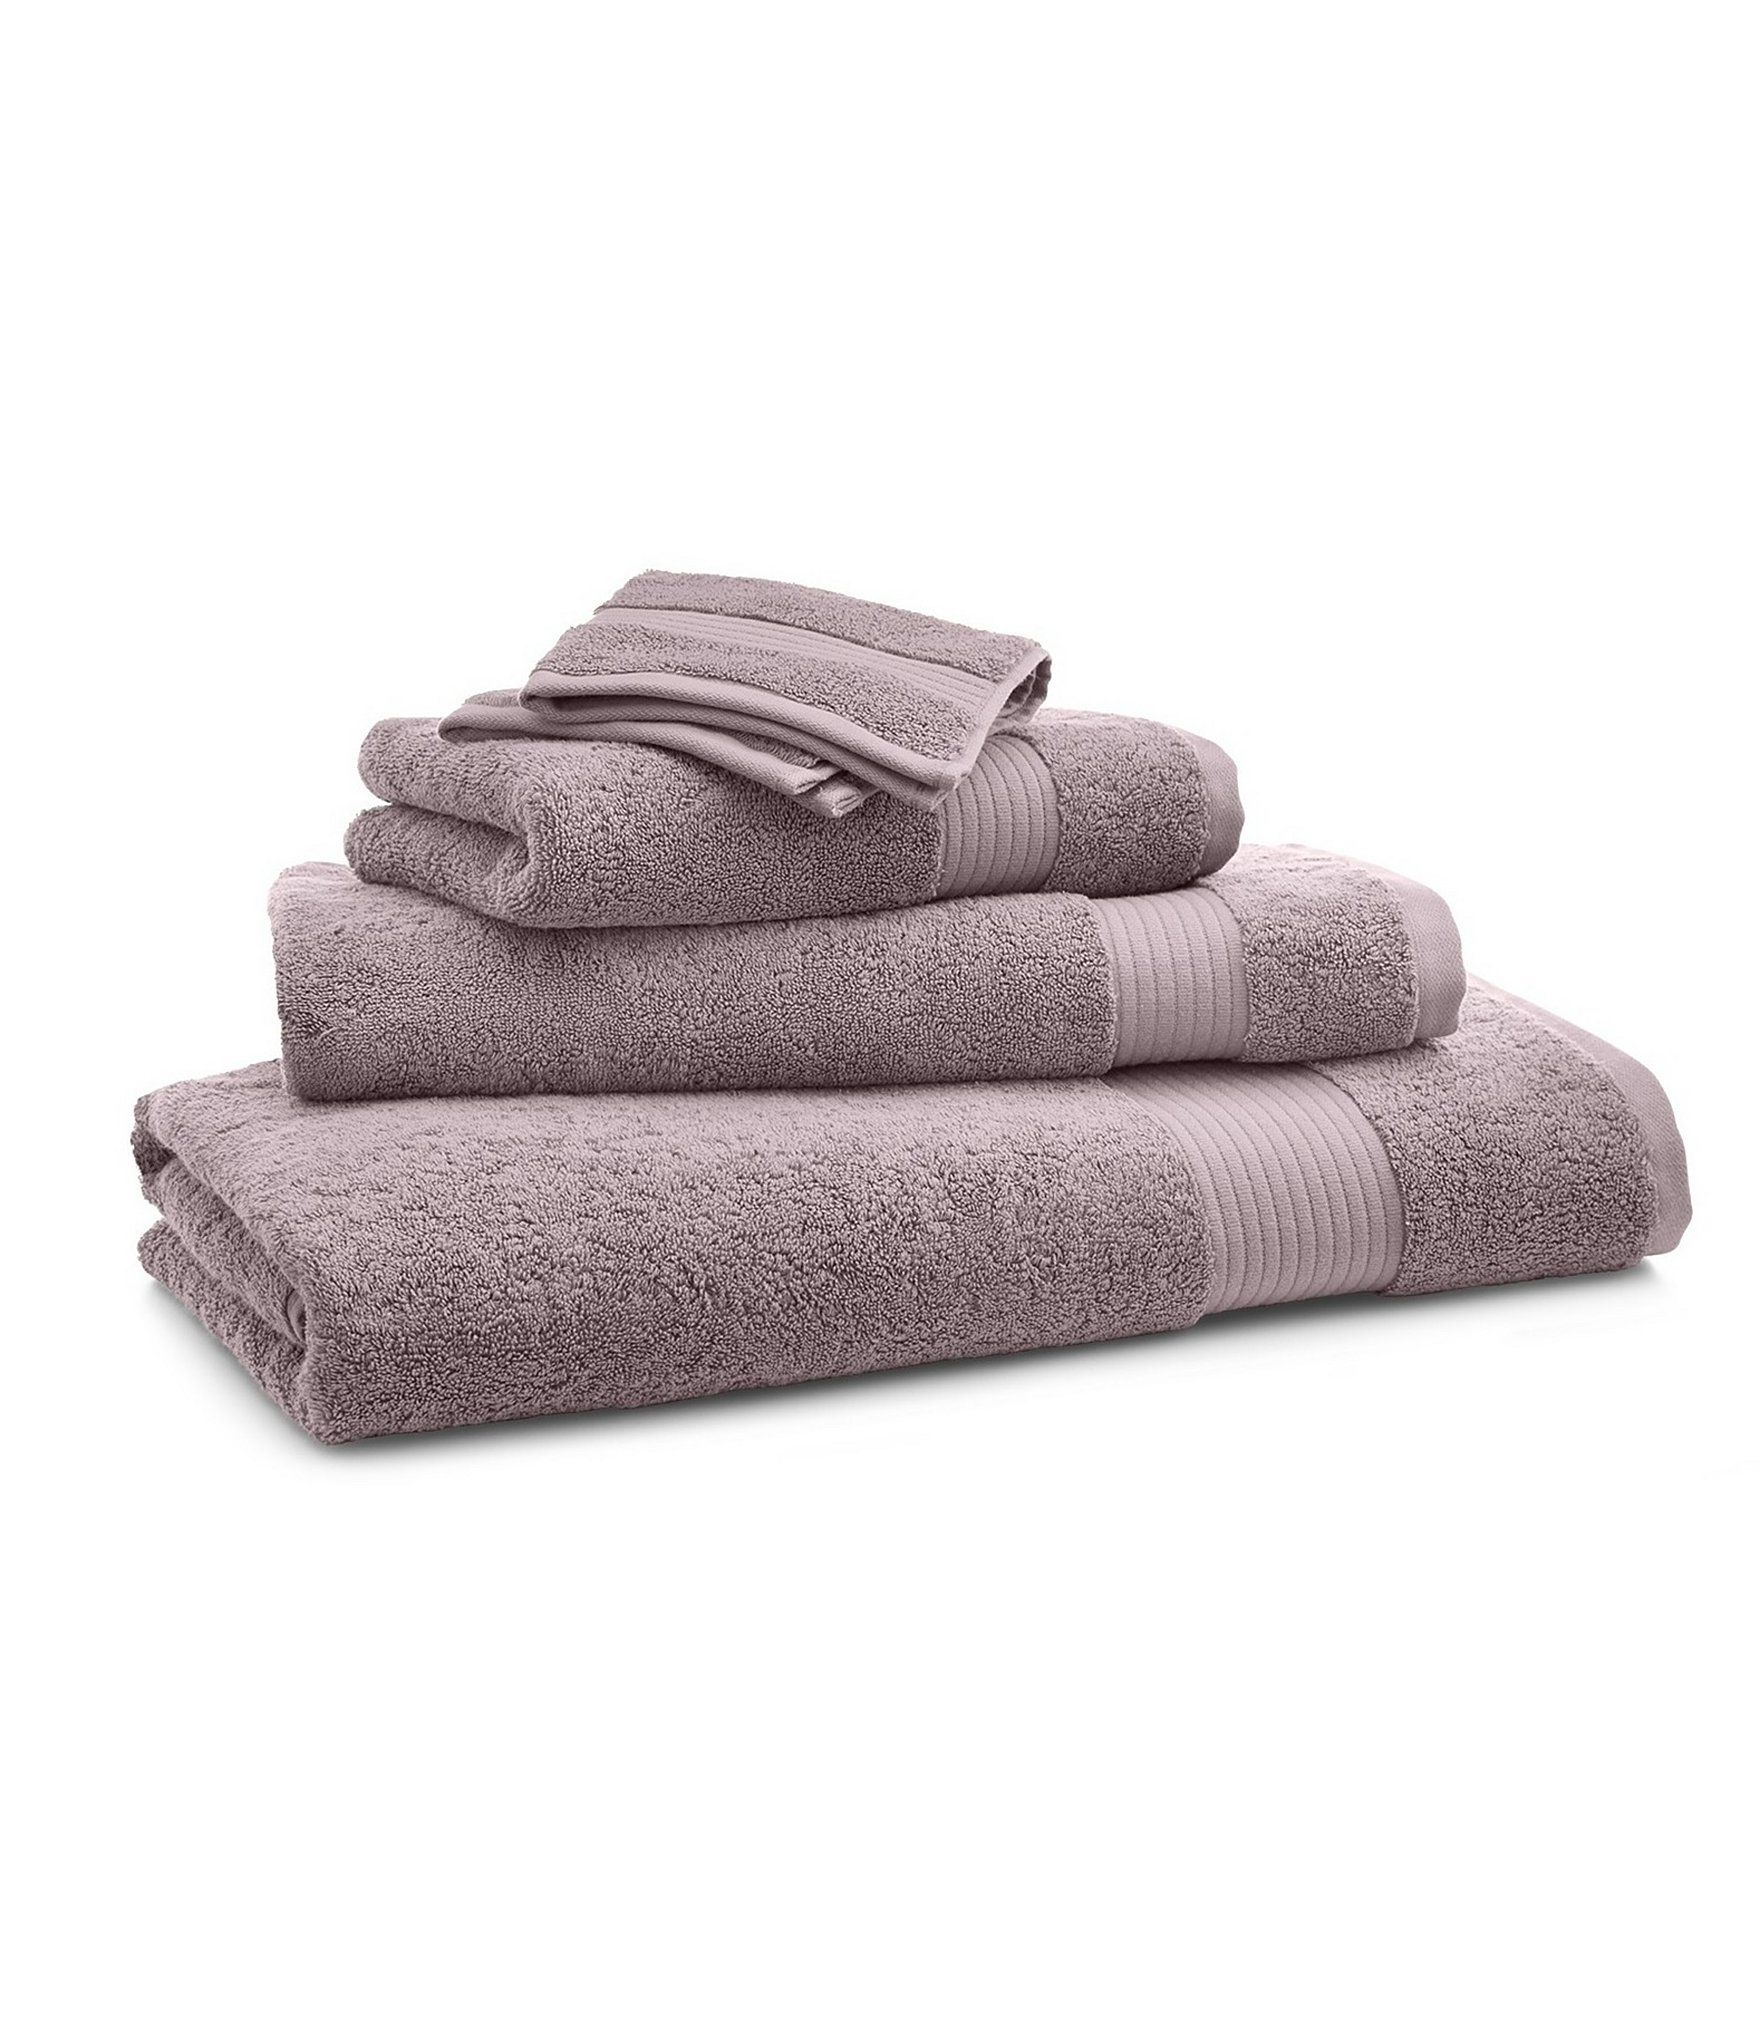 Ralph Lauren Bowery Bath Towels Dusty Lilac Washcloth In 2020